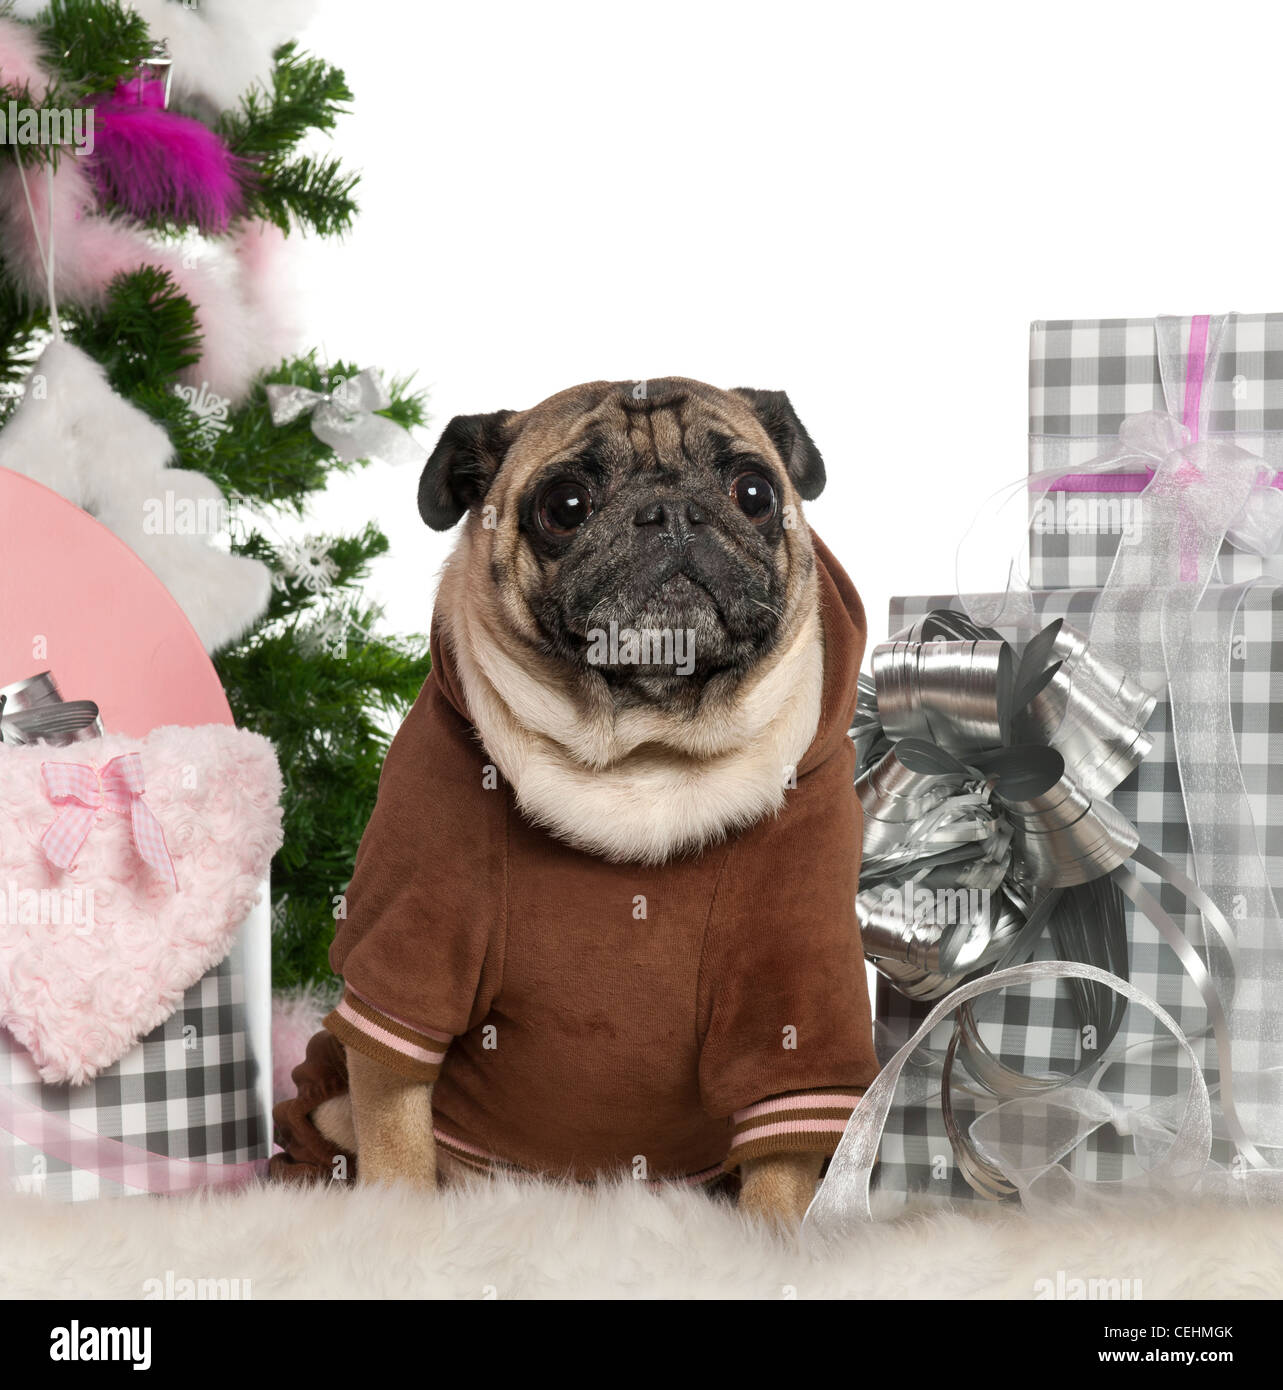 Pug, 6 years old, sitting with Christmas tree and gifts in front of white background Stock Photo